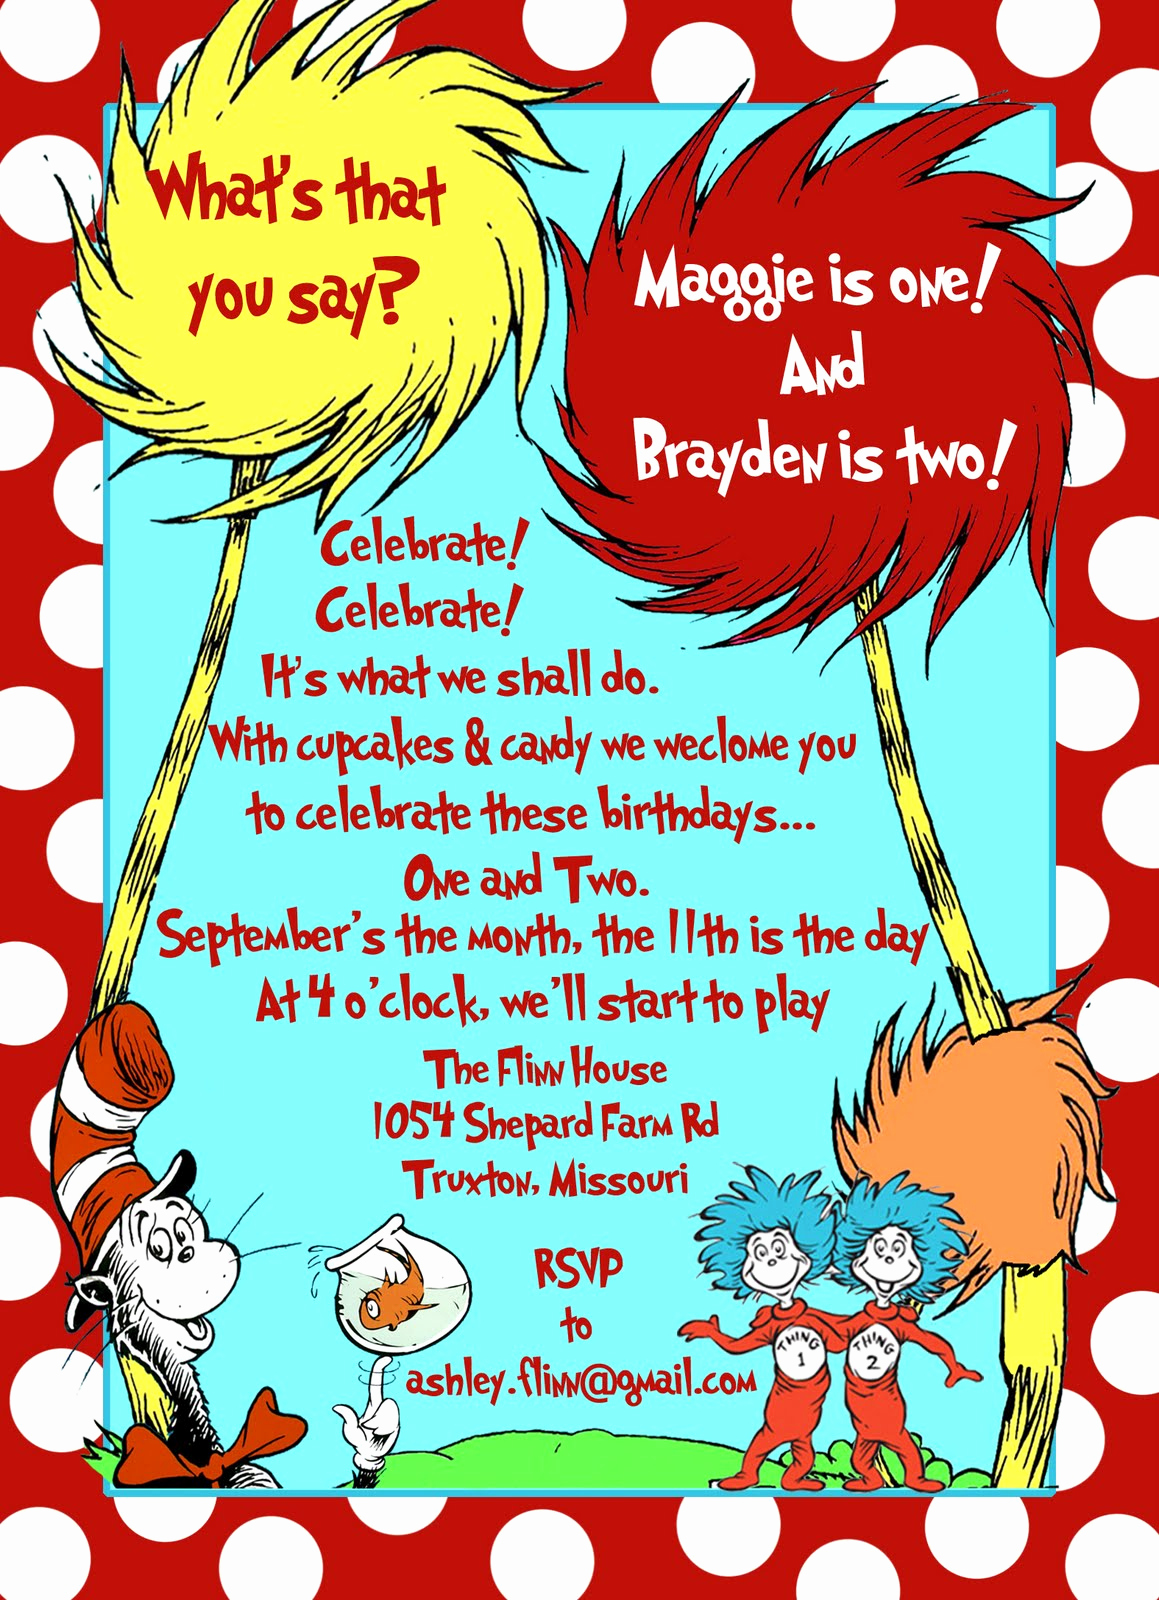 Dr Seuss Birthday Invitation Awesome Humble Hostess Kids Birthday Party Thing 1 and Thing 2